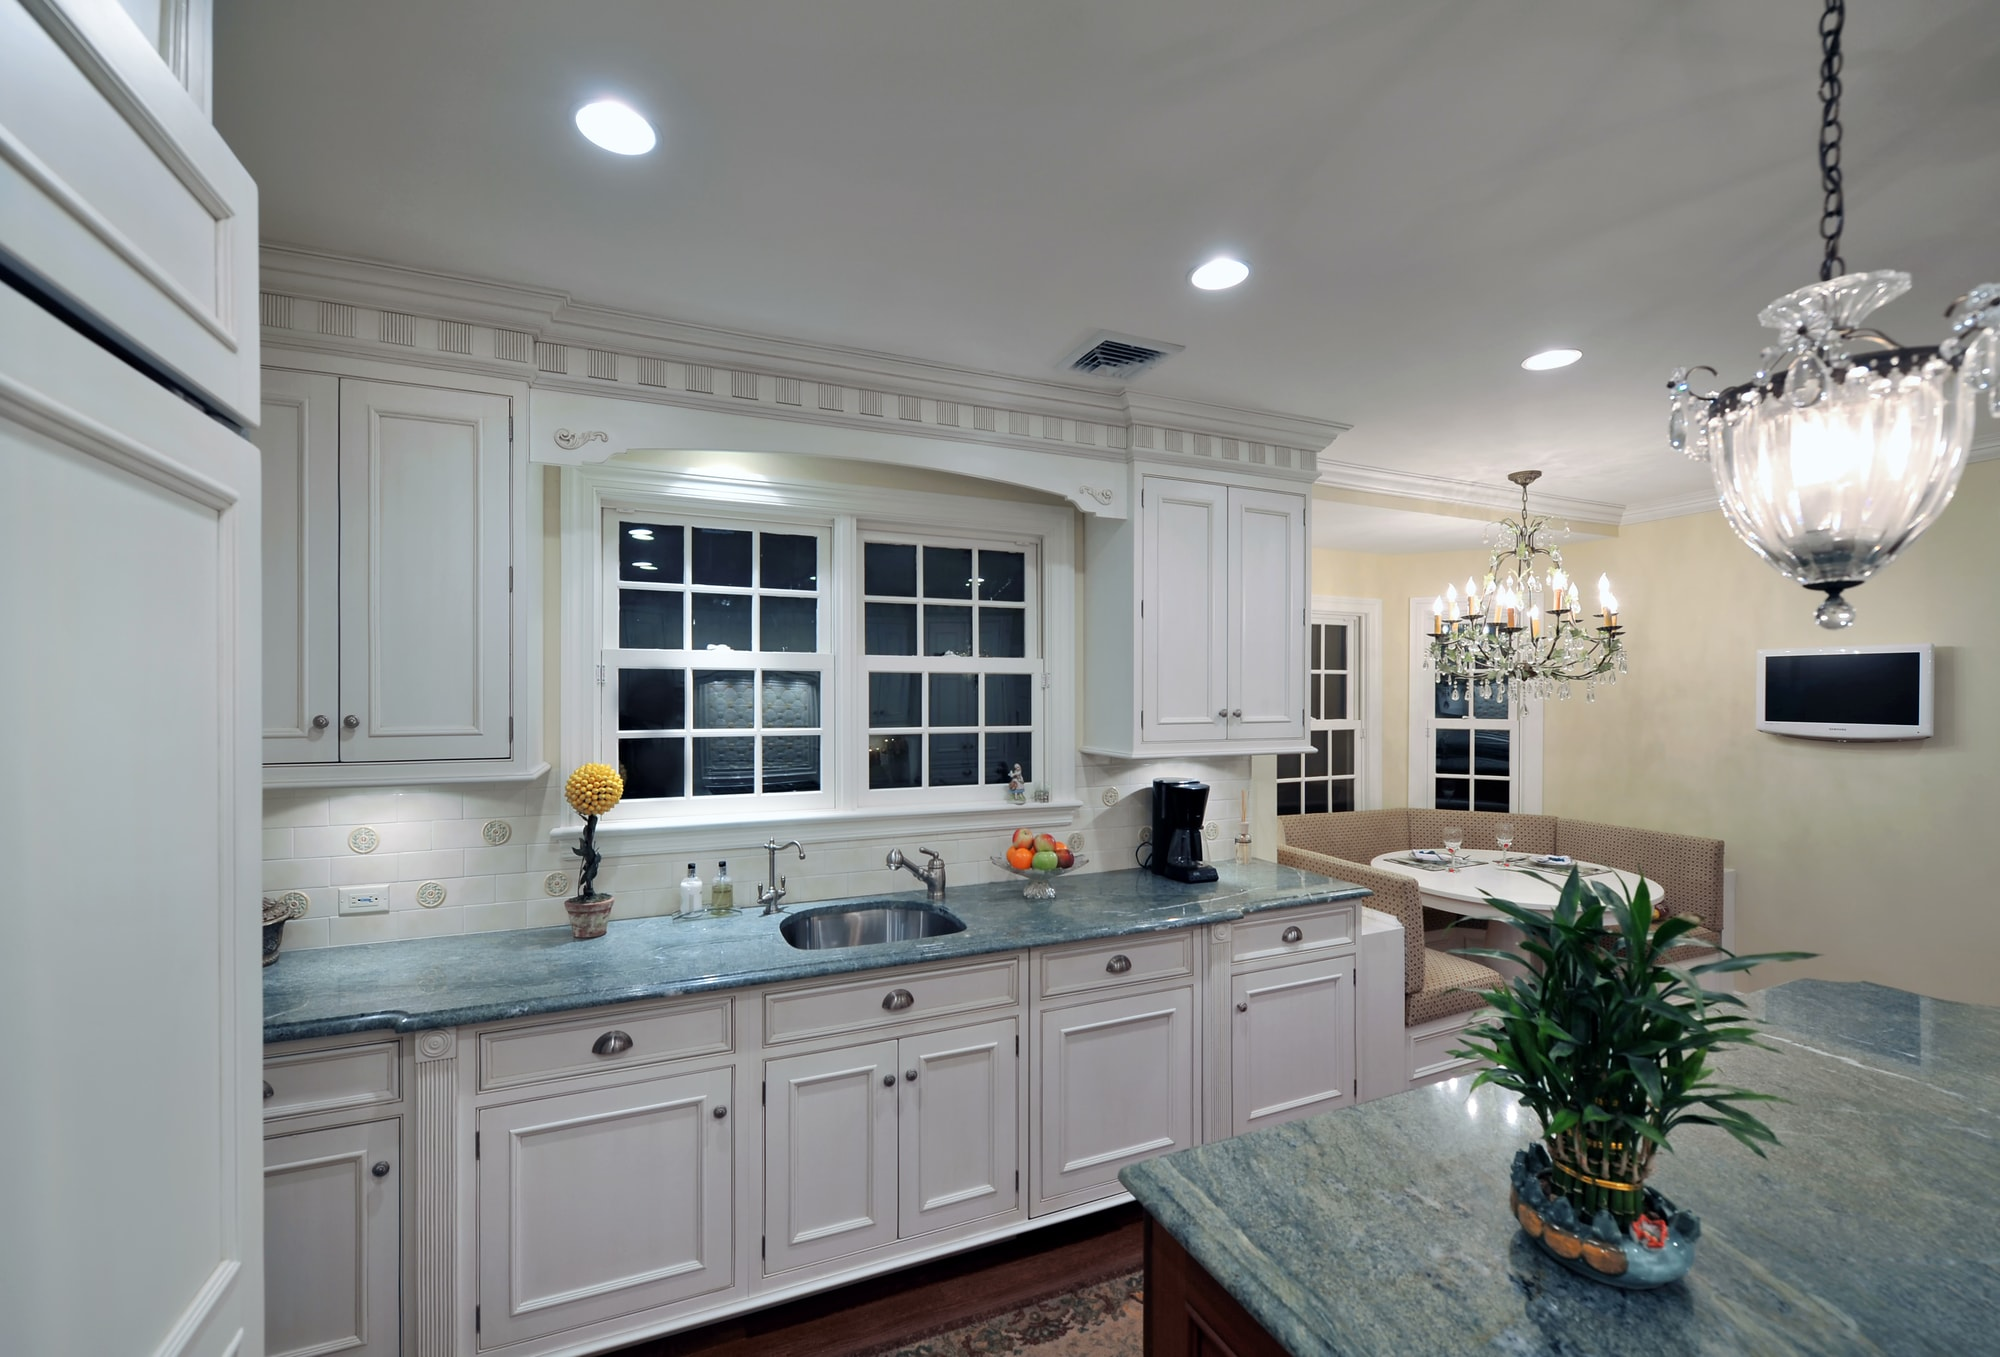 Traditional style kitchen with breakfast table in the corner